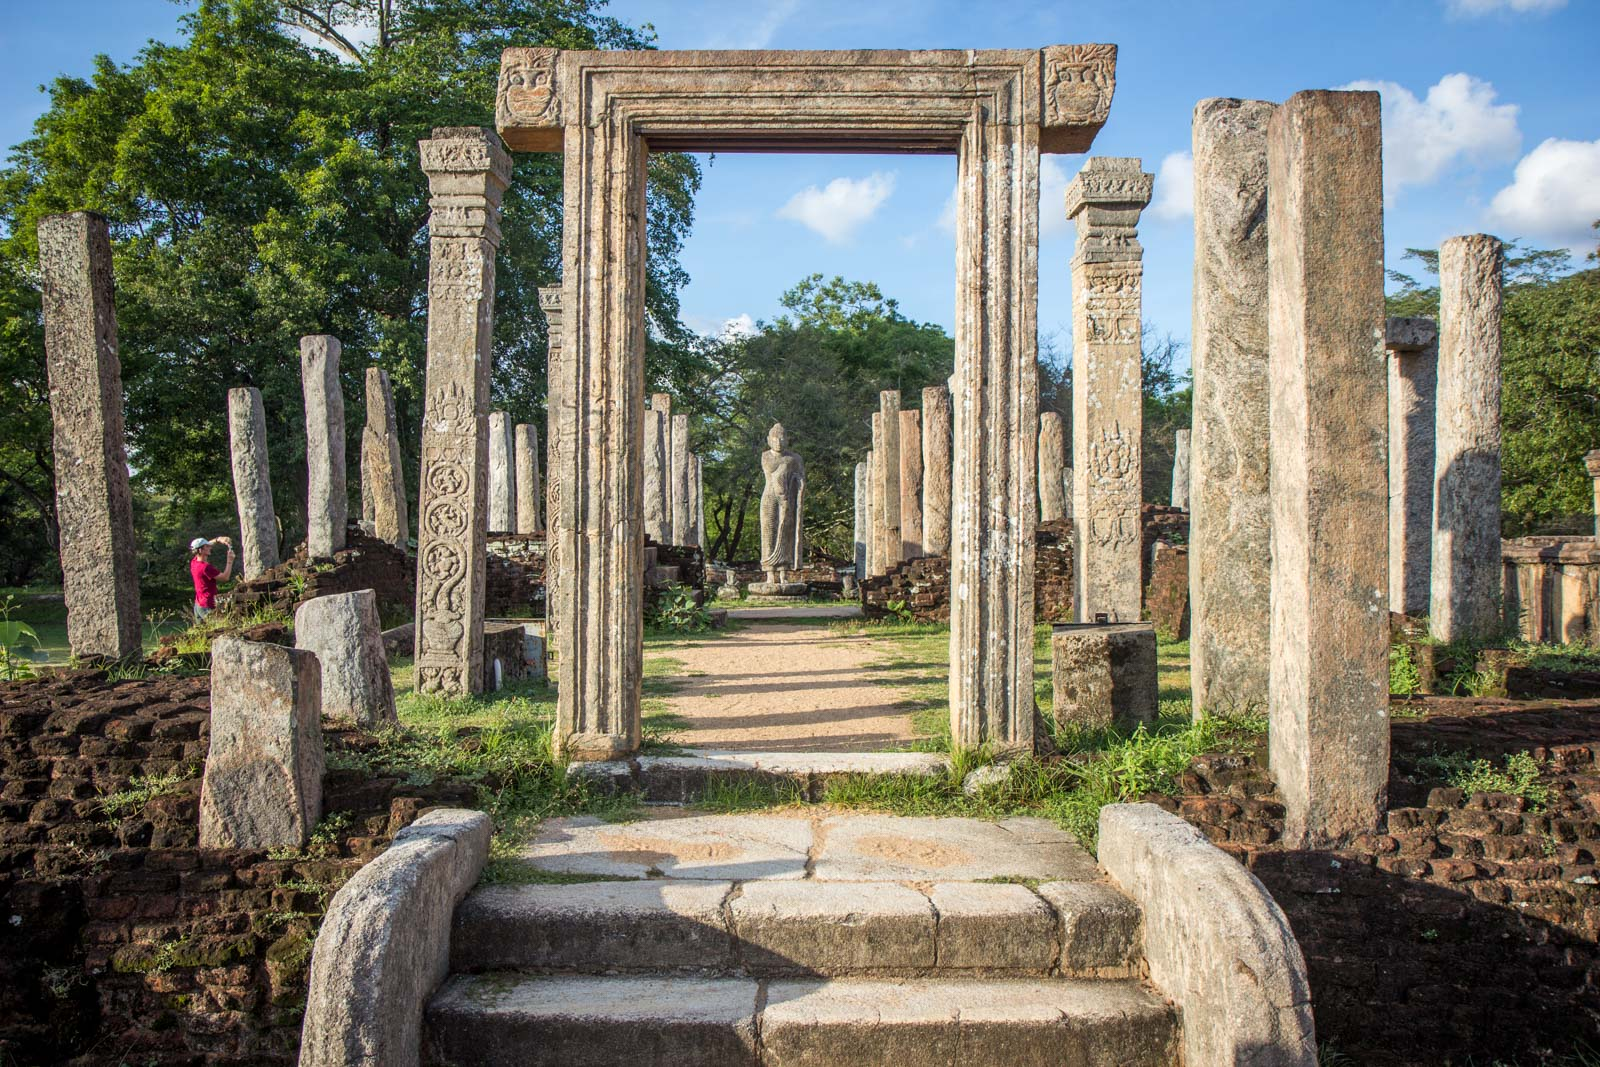 What to see at Polonnaruwa, Sri Lanka